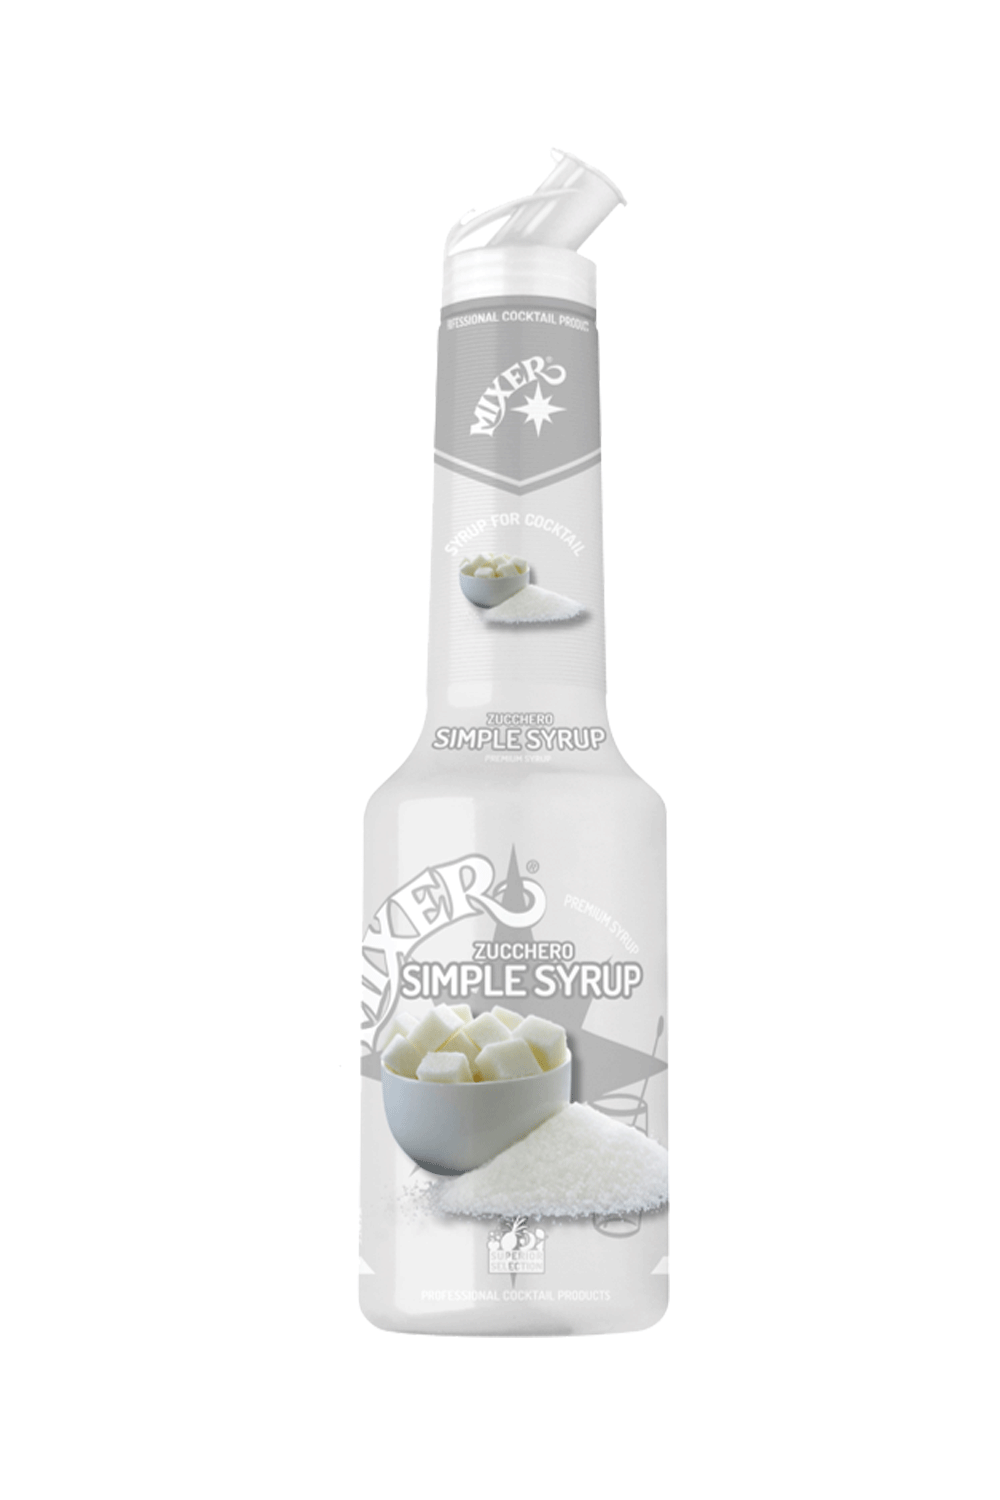 Zucchero bianco – Simple Syrup